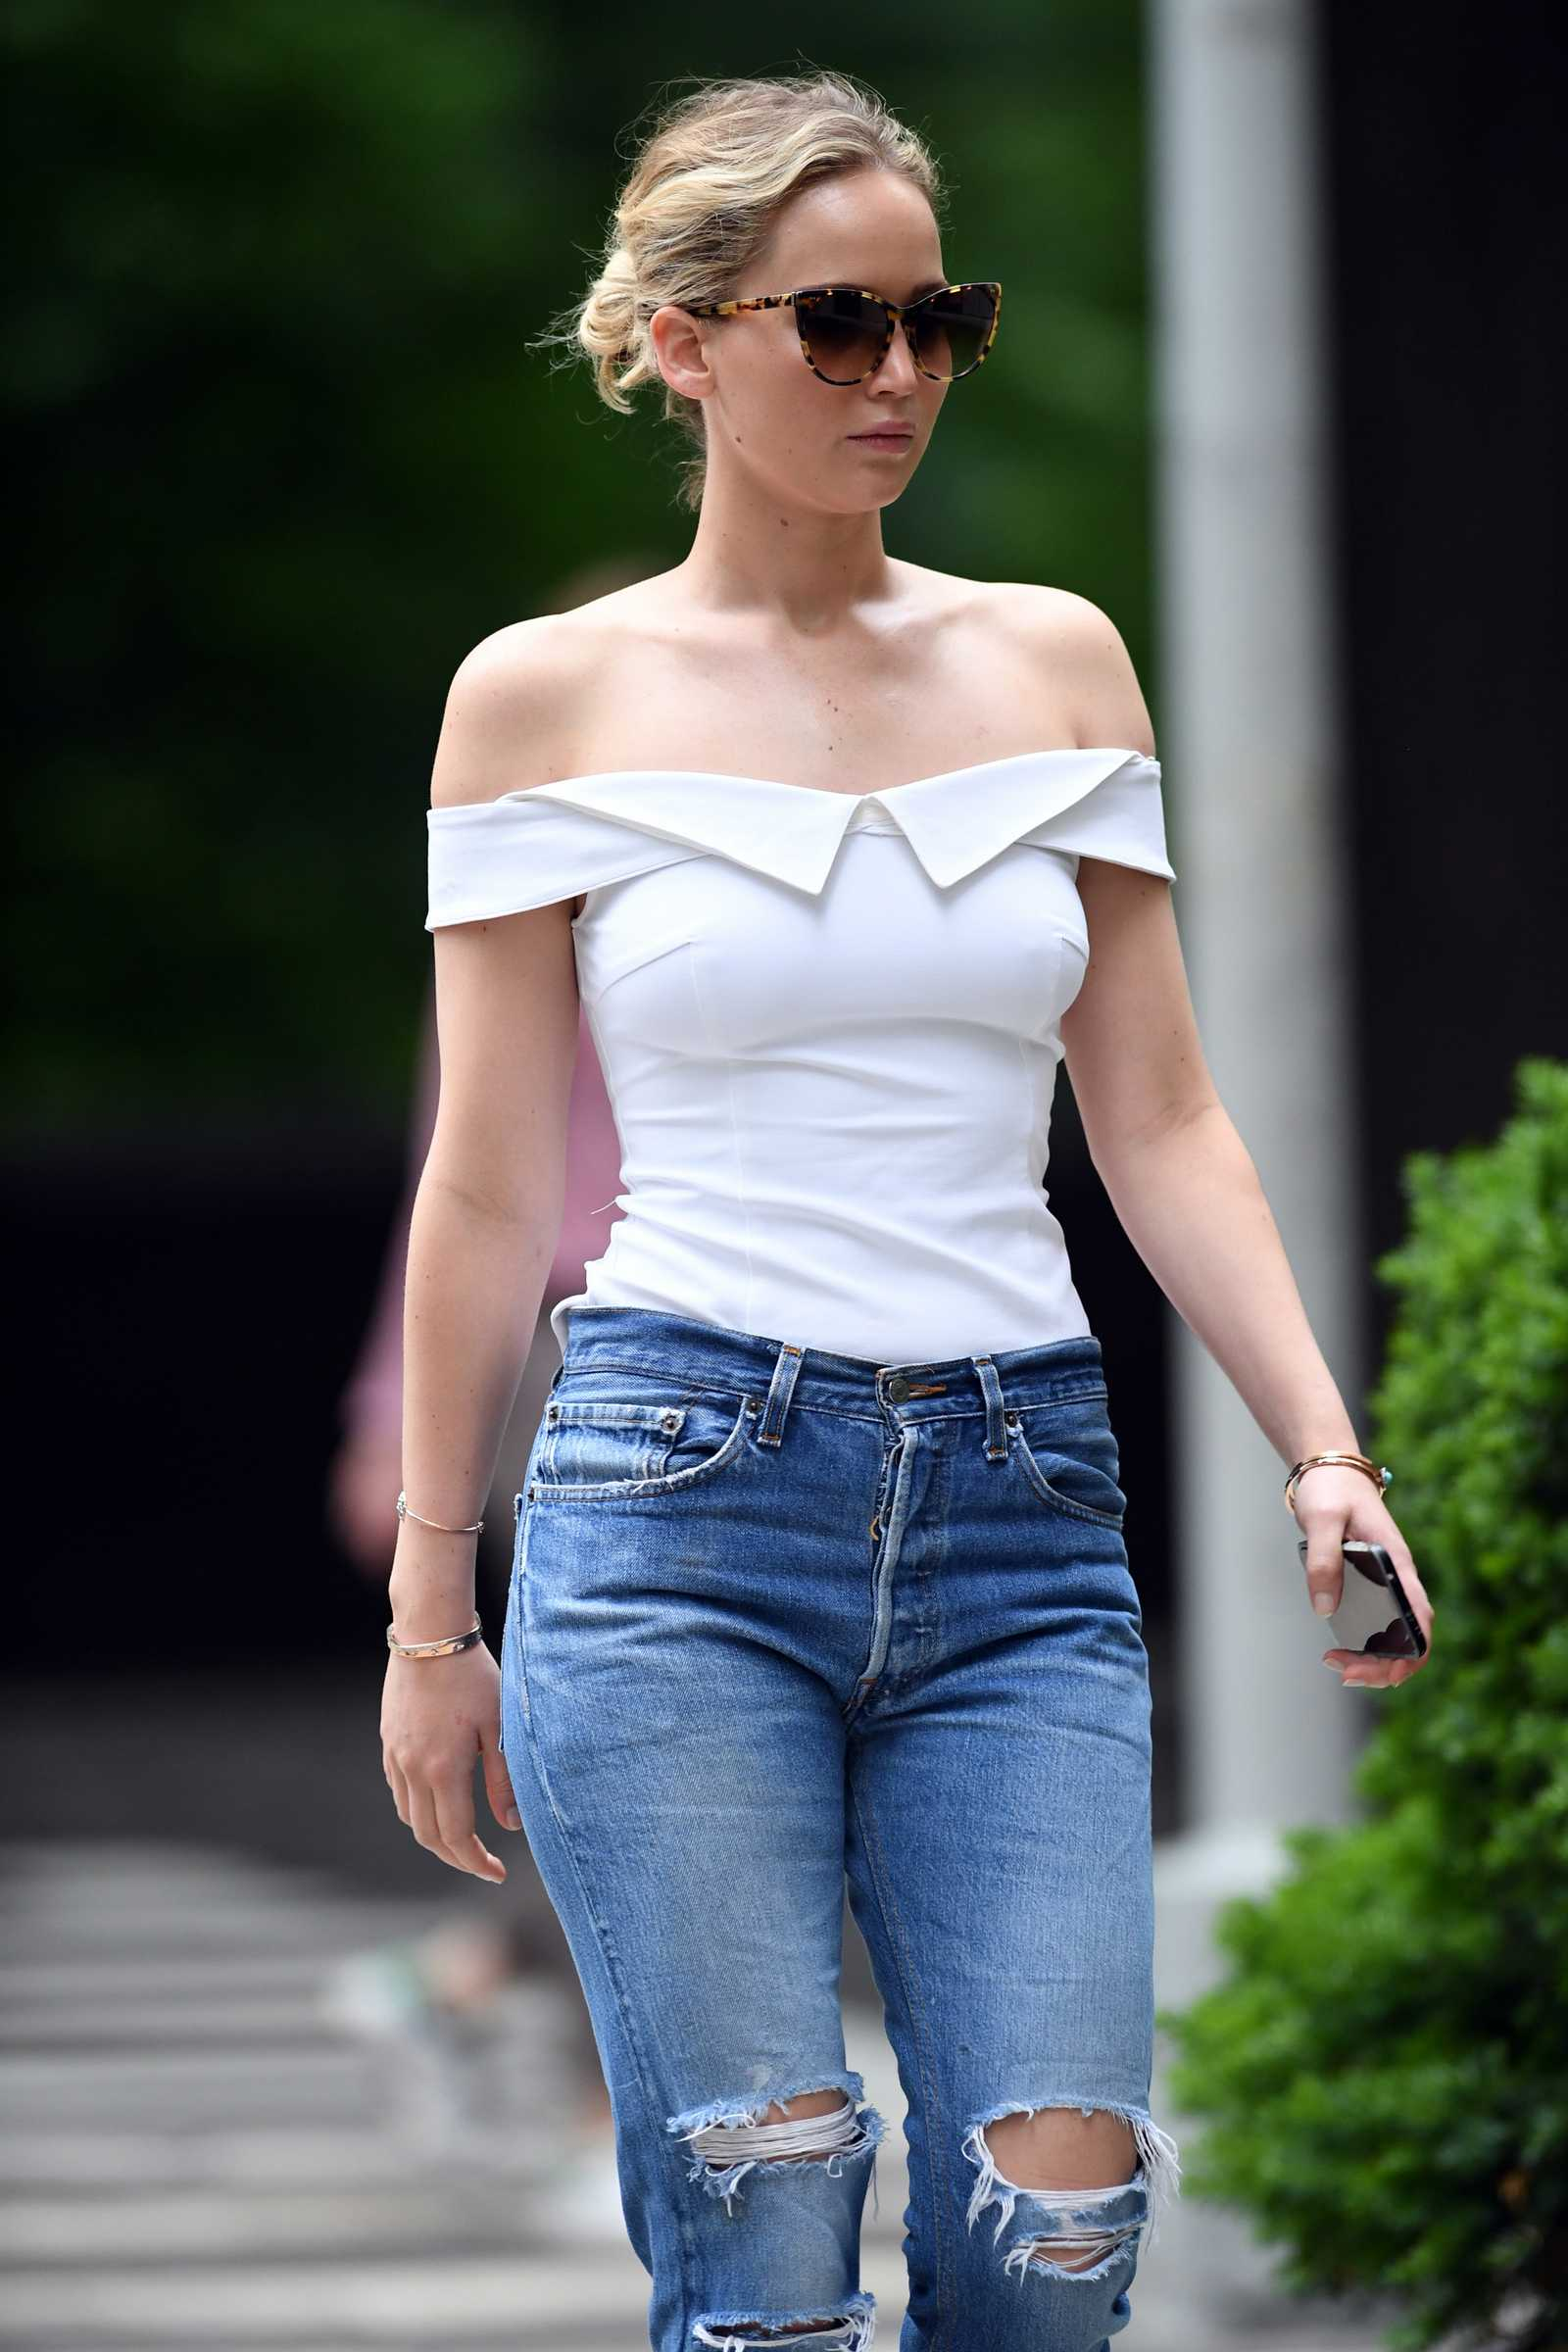 http://jenniferlawrencedaily.com/gallery/albums/userpics/10001/Jennifer_Lawrence_-_Going_for_a_walk_in_Central_Park_on_June_15-10.jpg